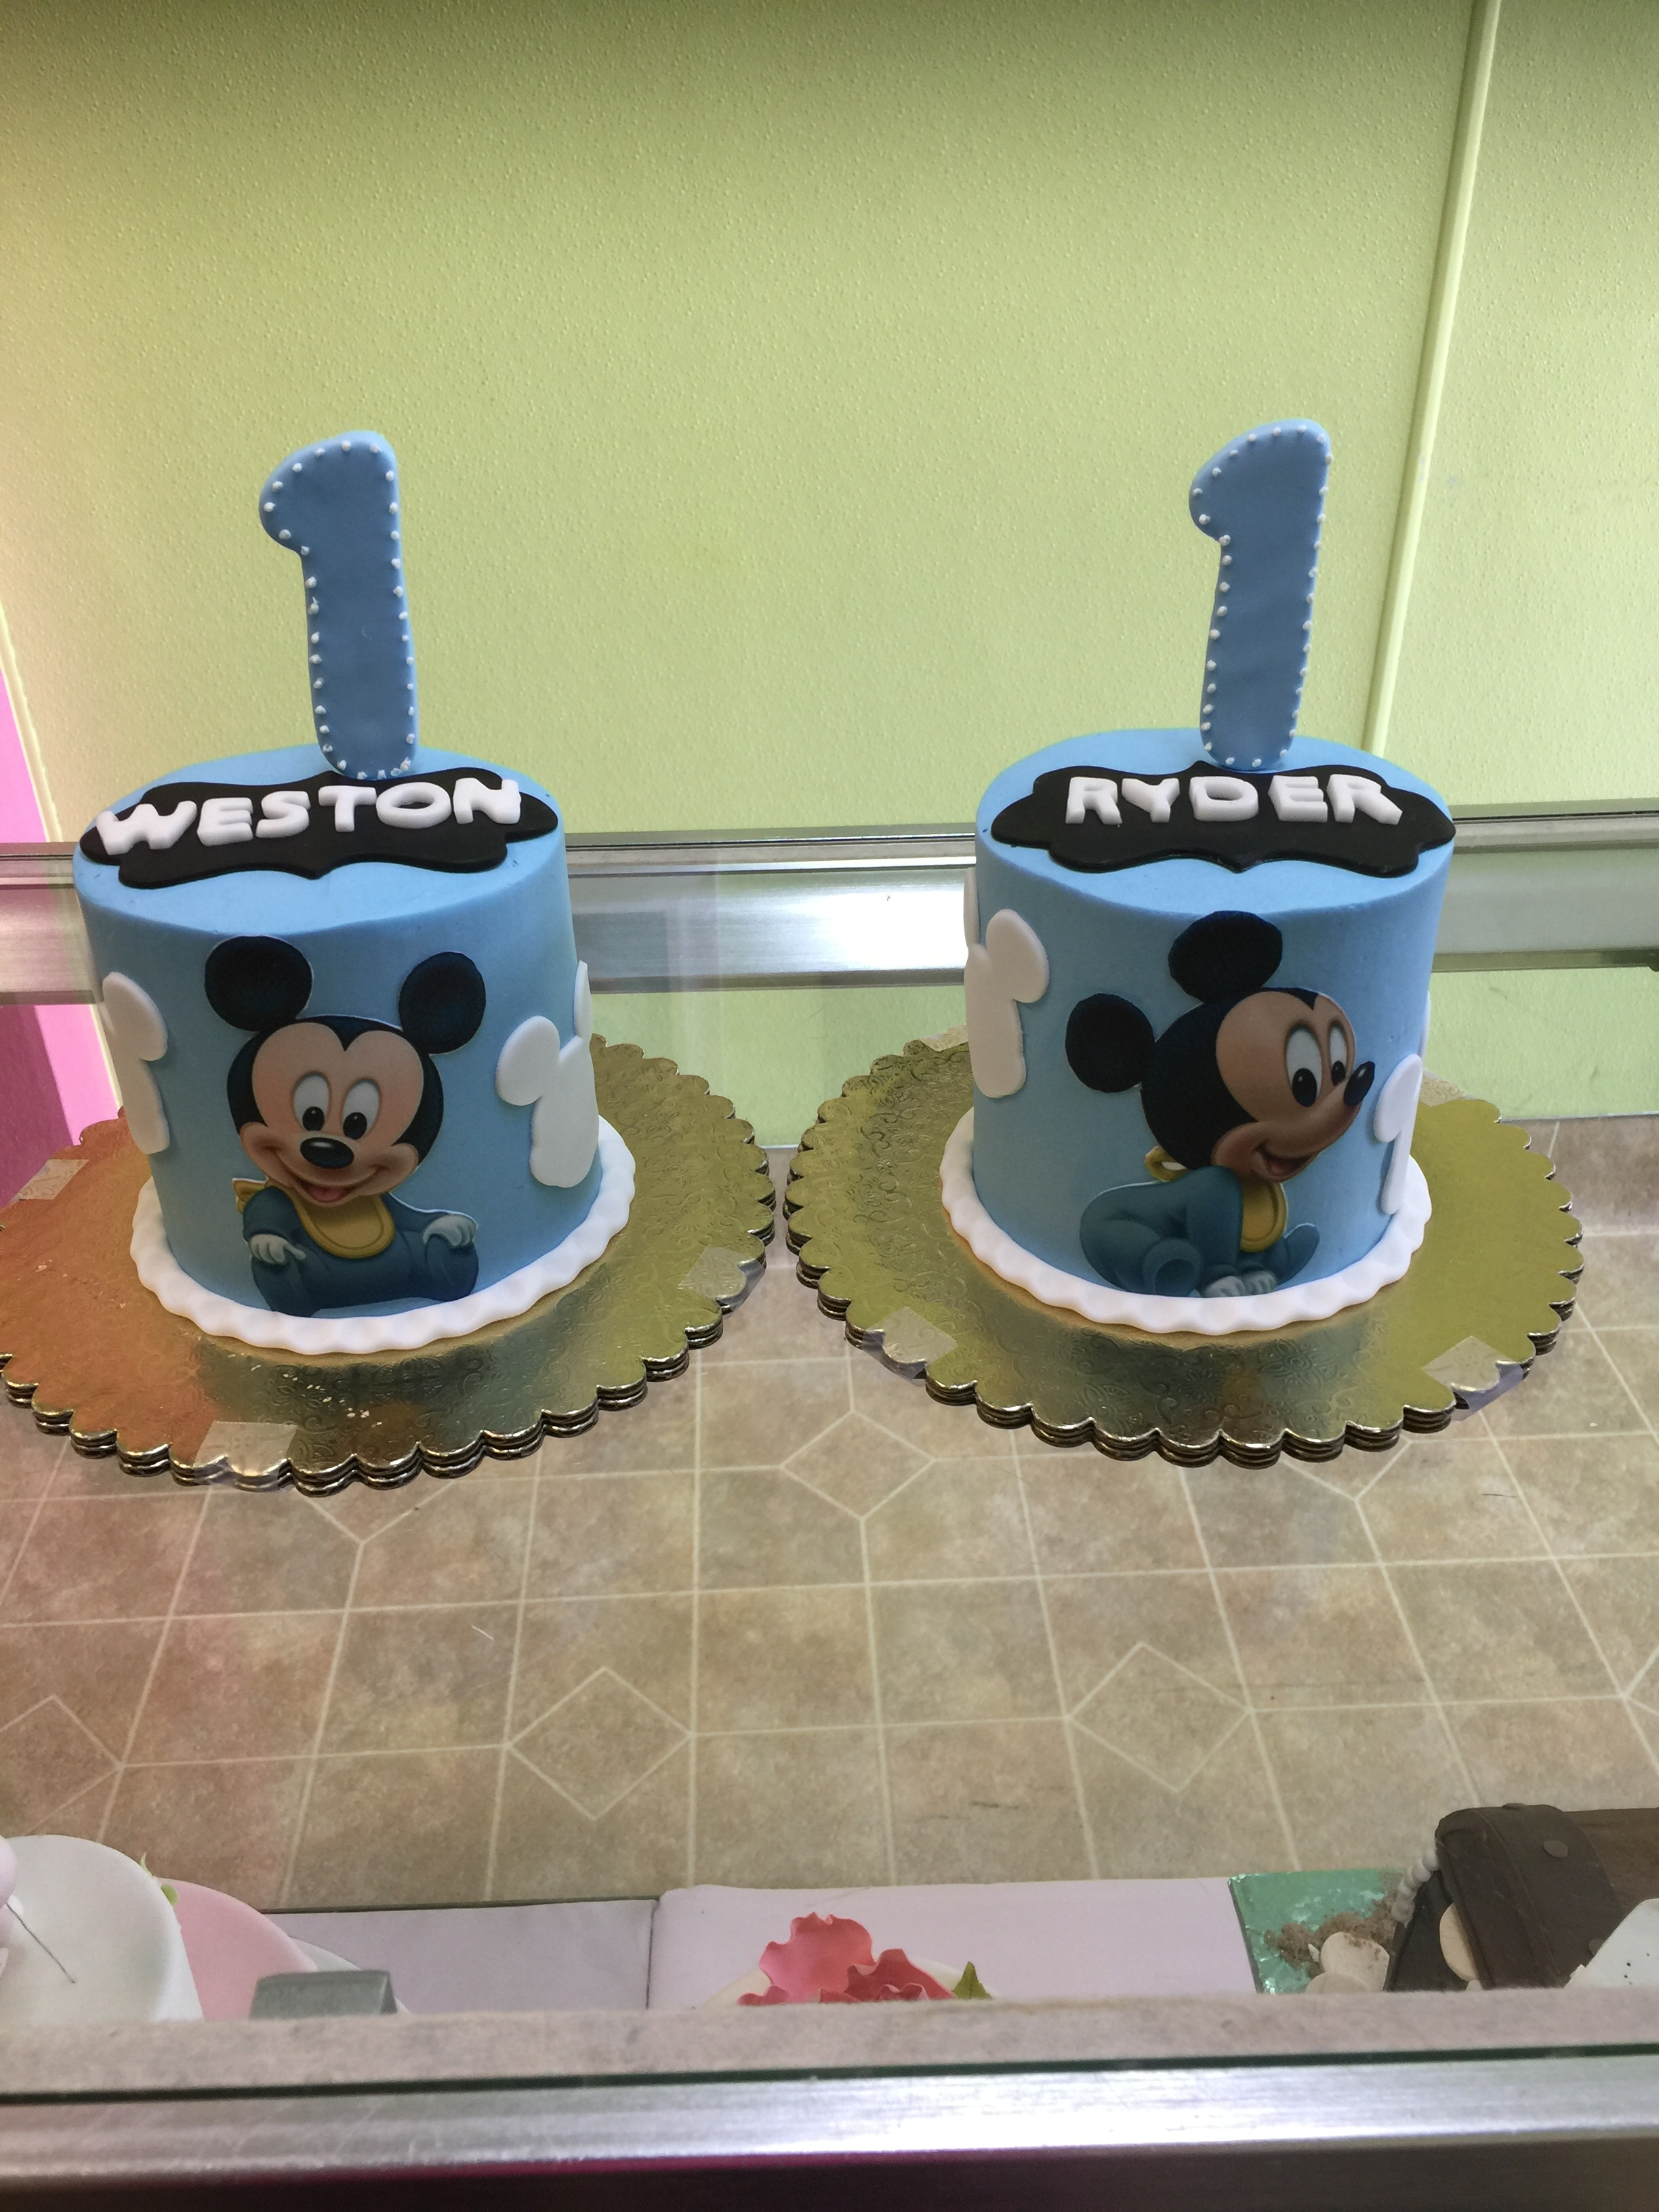 2971, first birthday, 1st birthday, disney, mickey mouse, baby mickey, blue, edible image, twins